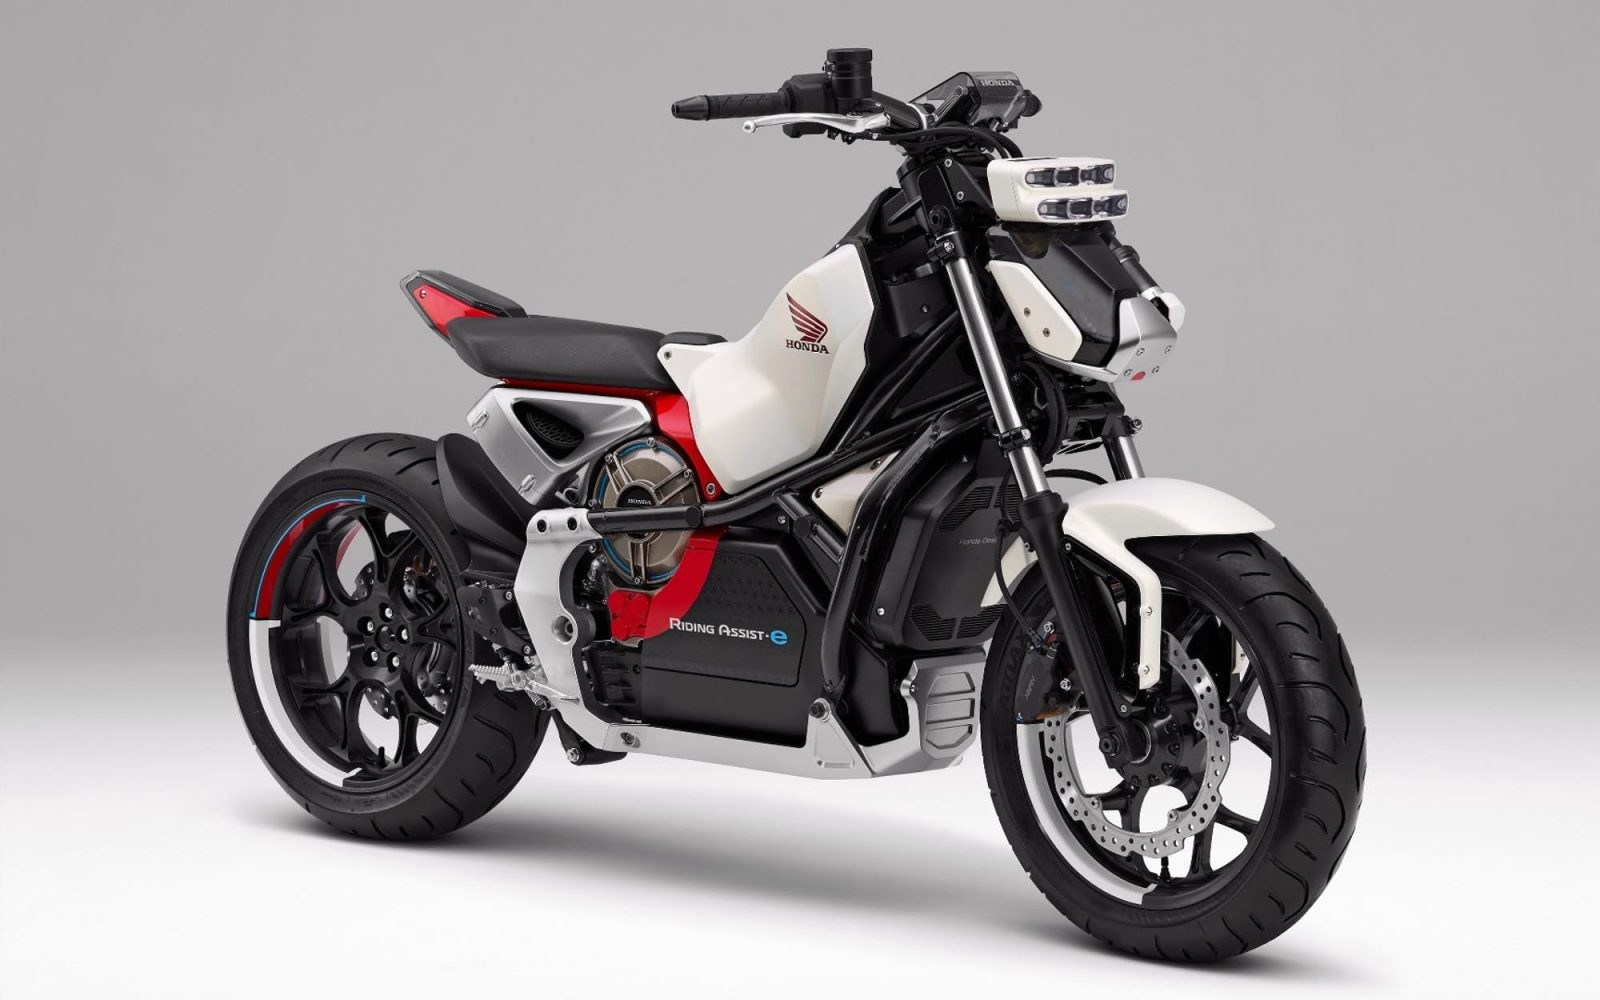 honda introduces riding assist e self balancing electric motorcycle electrek. Black Bedroom Furniture Sets. Home Design Ideas